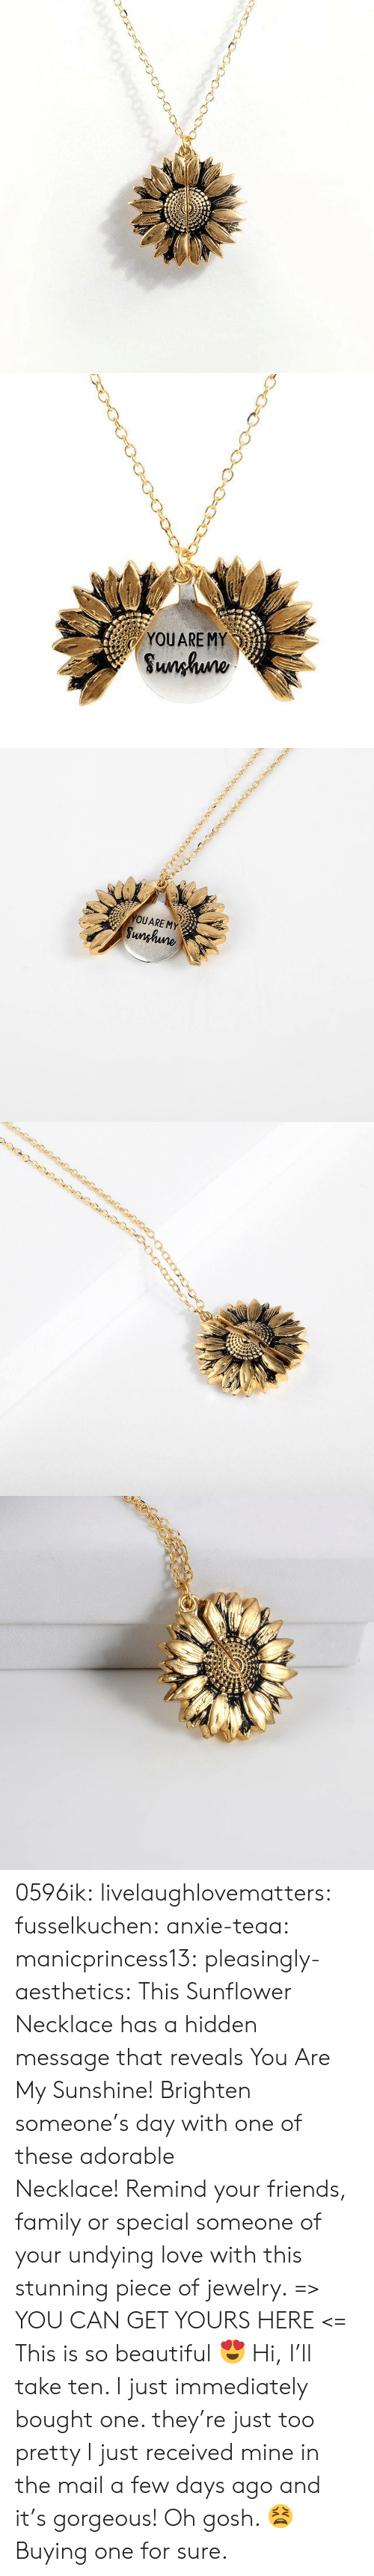 So Beautiful: YOUARE MY  Sunhuno   YOUARE MY  Sunghune 0596ik:  livelaughlovematters:  fusselkuchen: anxie-teaa:   manicprincess13:   pleasingly-aesthetics:  This Sunflower Necklace has a hidden message that reveals You Are My Sunshine! Brighten someone's day with one of these adorable Necklace! Remind your friends, family or special someone of your undying love with this stunning piece of jewelry. => YOU CAN GET YOURS HERE <=   This is so beautiful 😍    Hi, I'll take ten.    I just immediately bought one. they're just too pretty   I just received mine in the mail a few days ago and it's gorgeous!  Oh gosh. 😫 Buying one for sure.